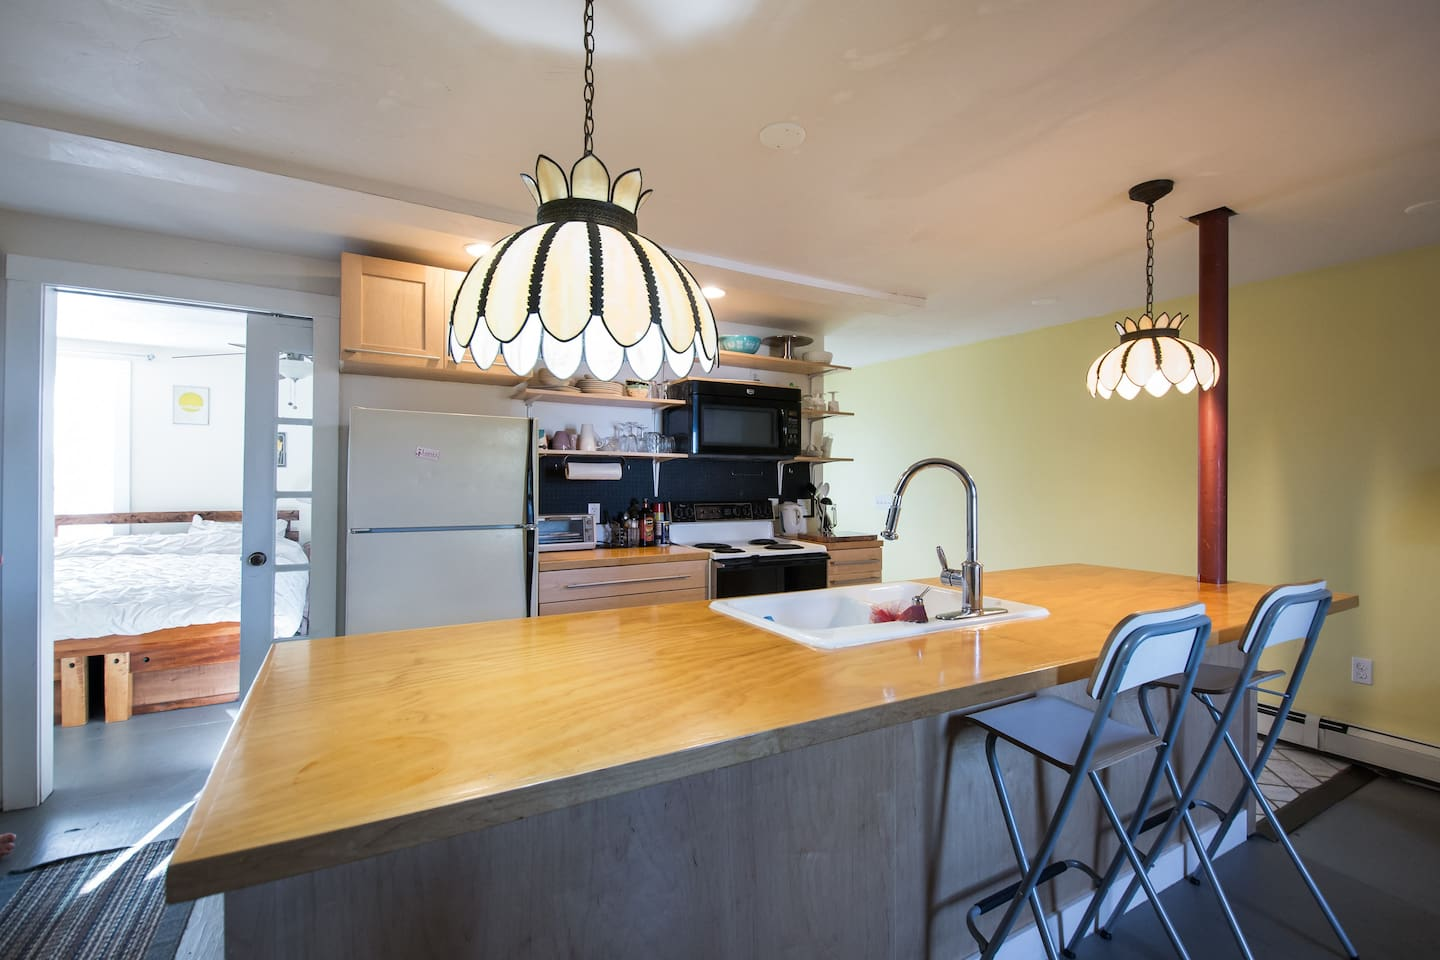 Fully furnished kitchen, ready to cook in!